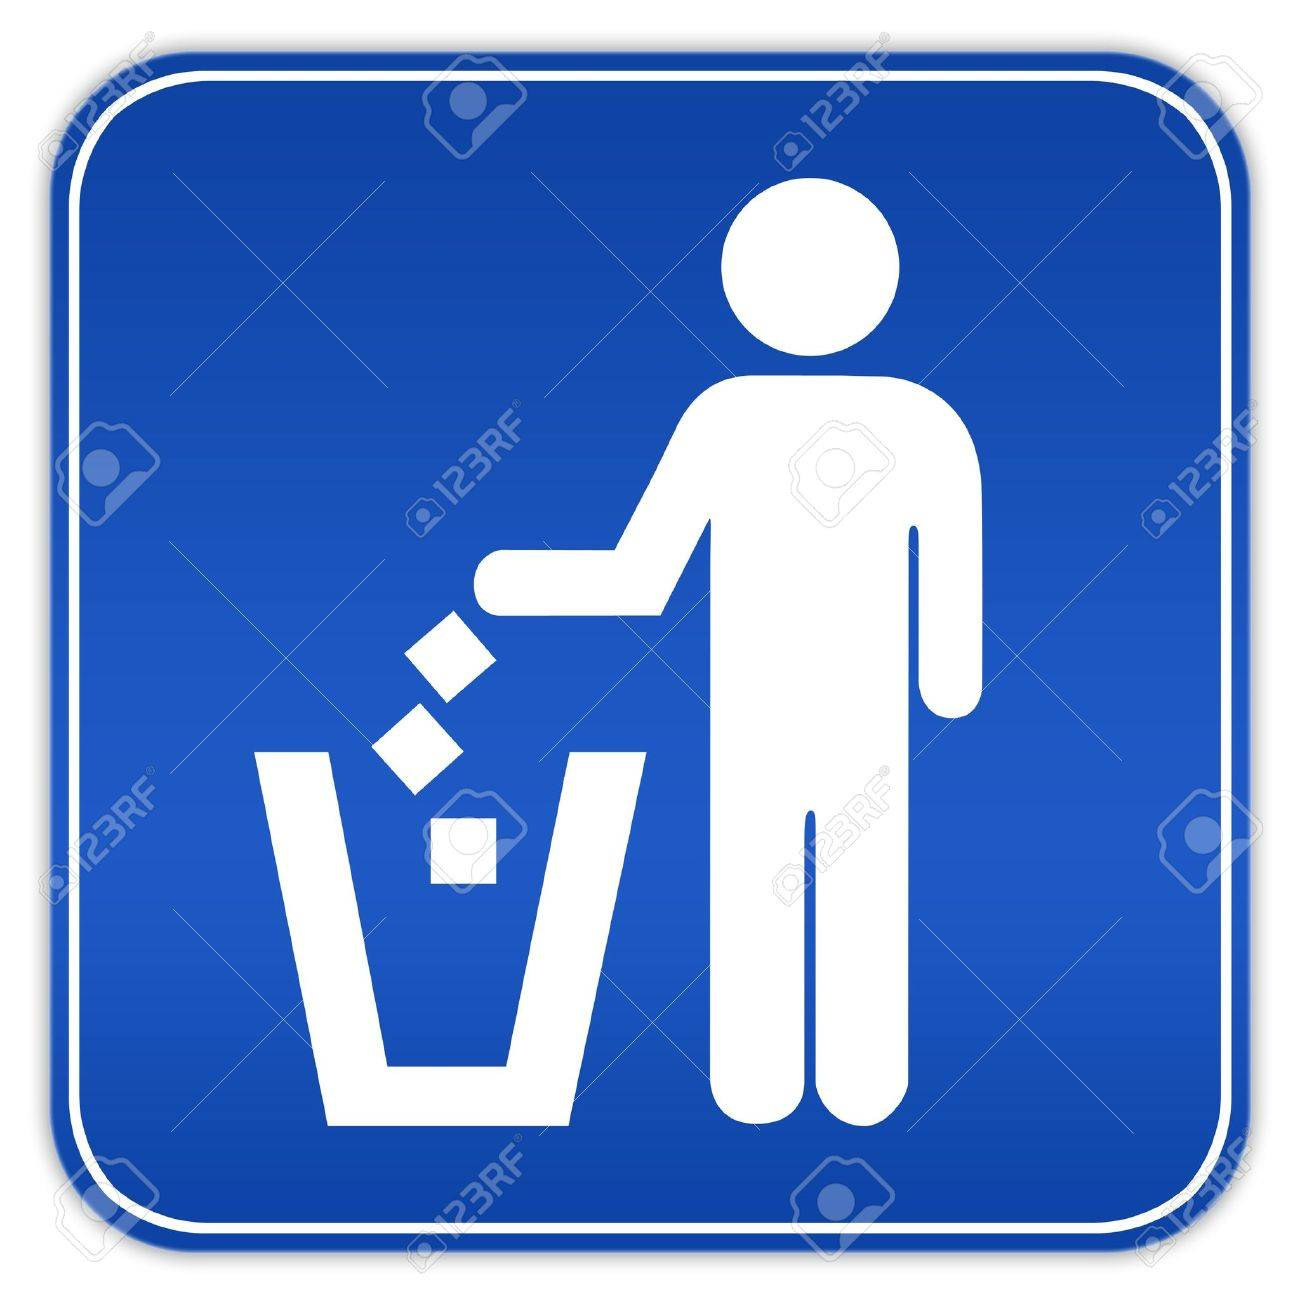 No littering sign Stock Photo - 8101074